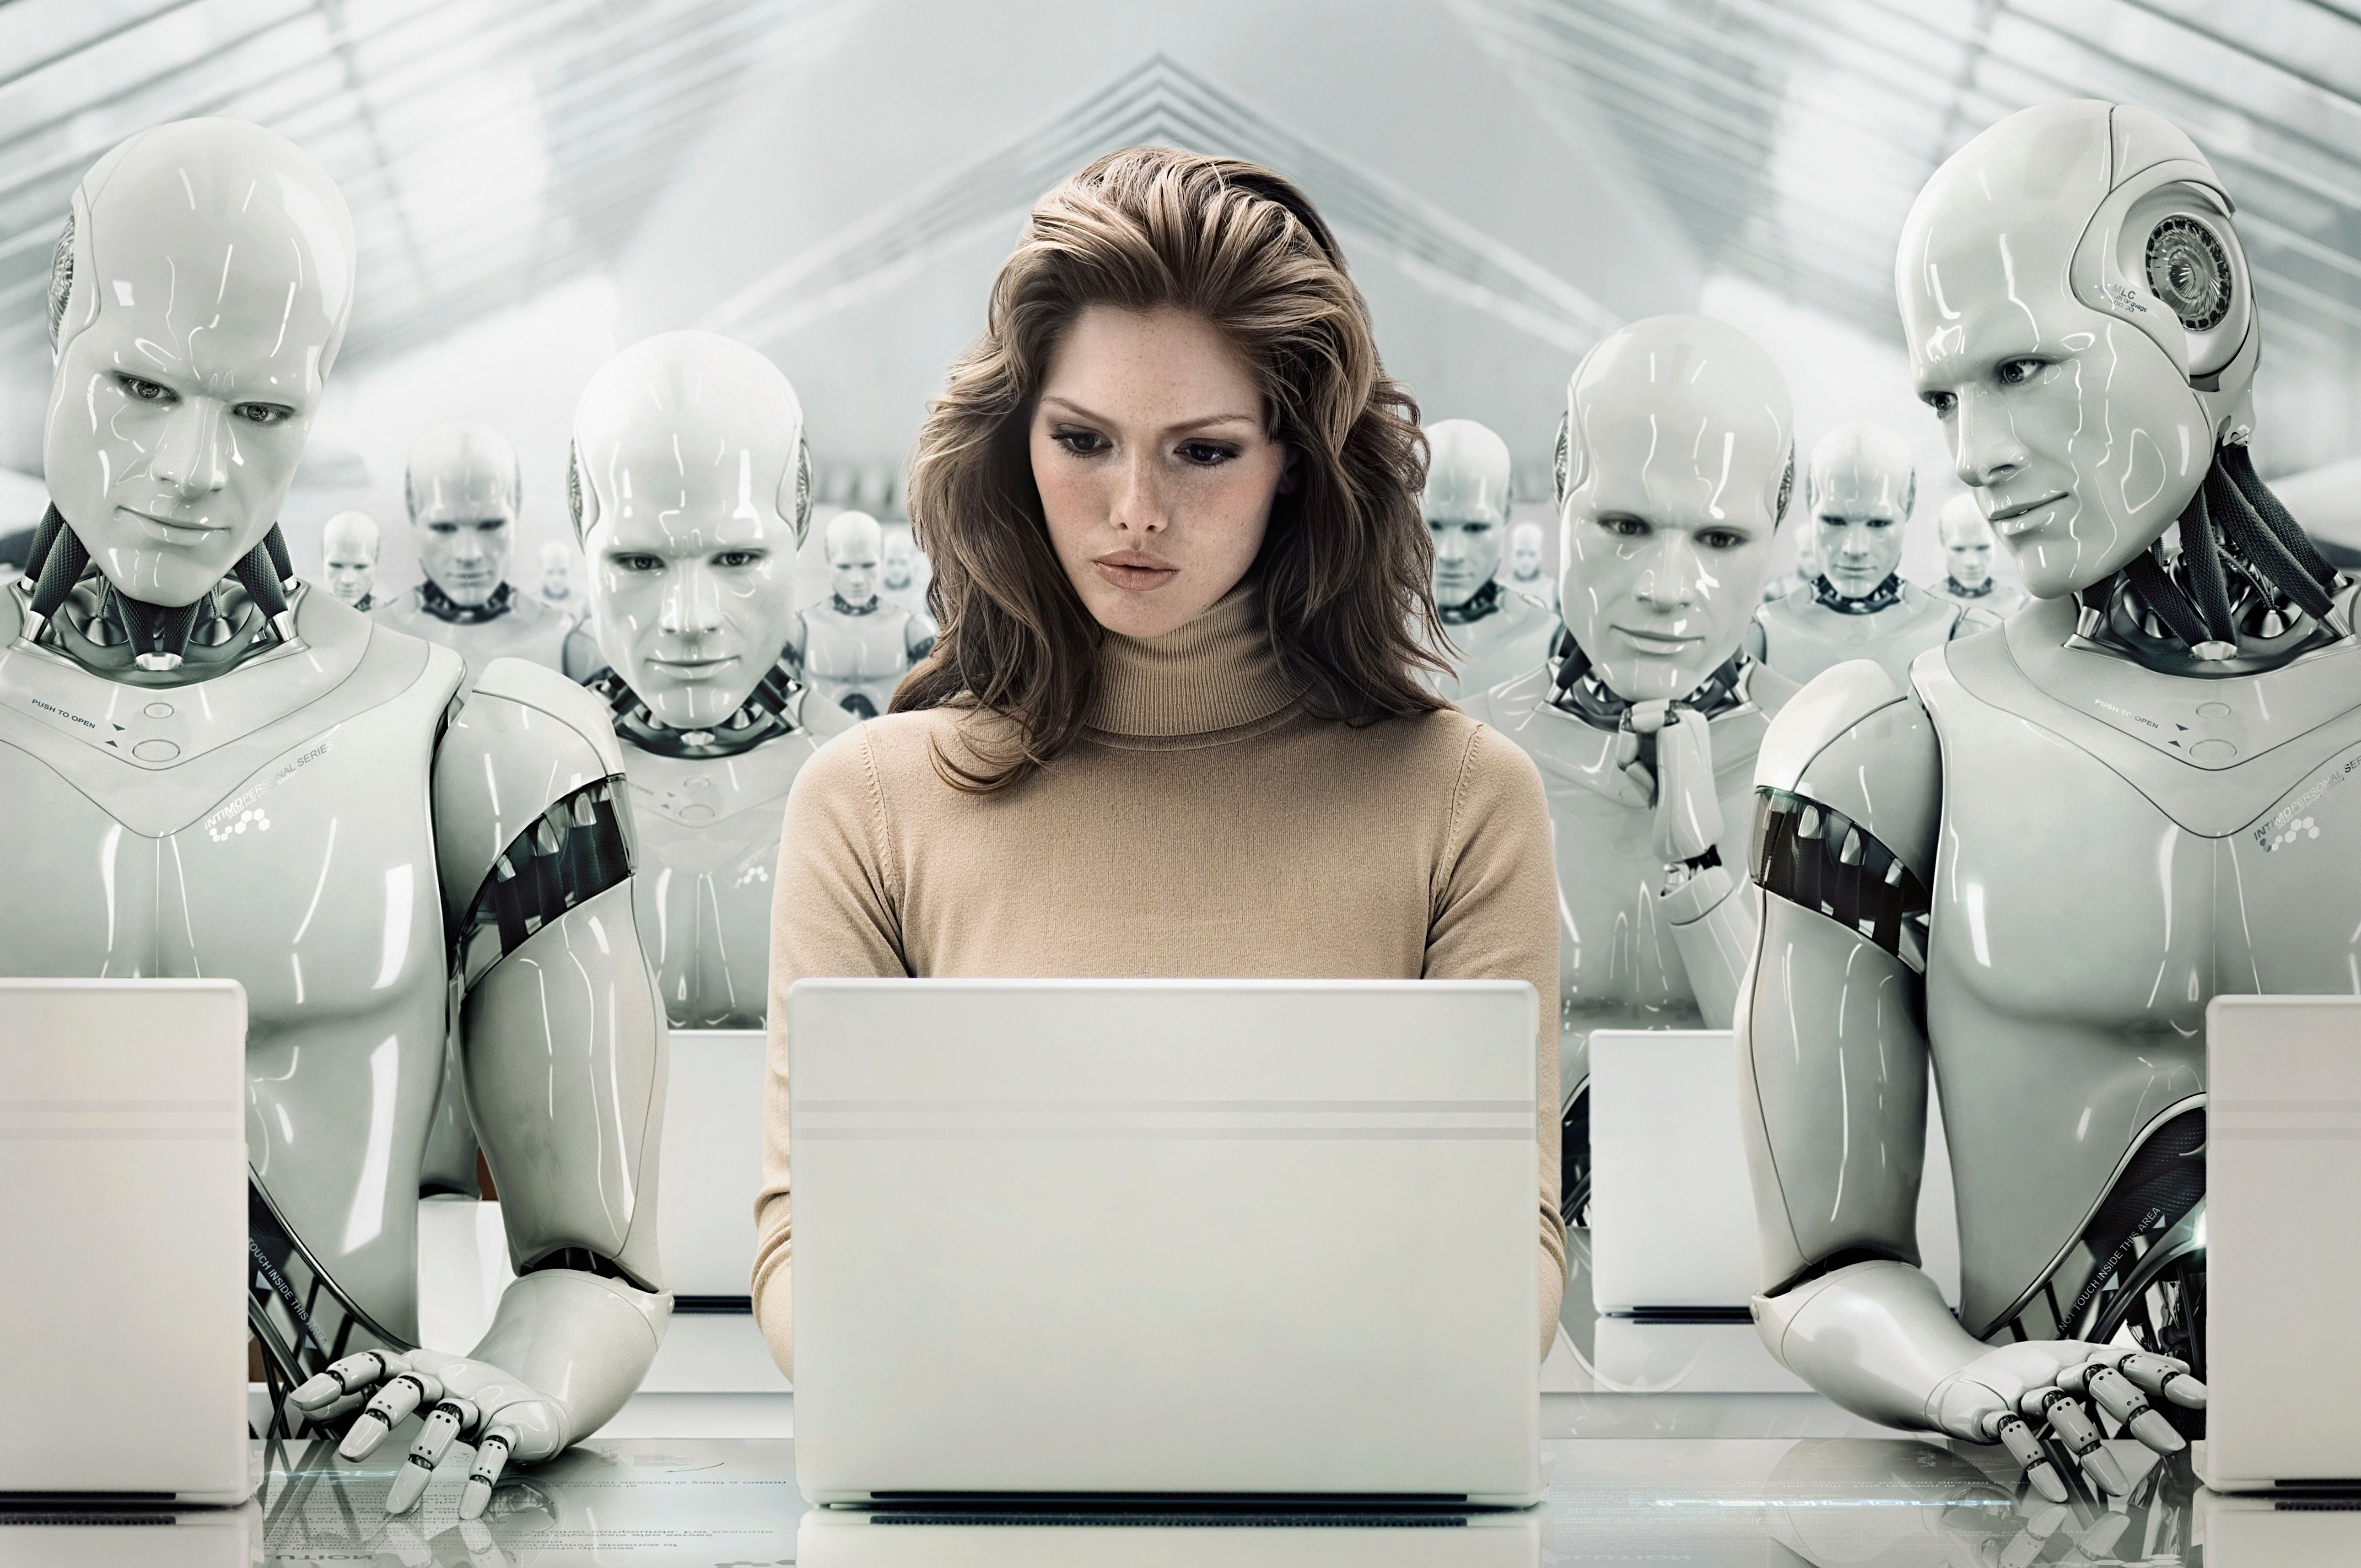 10 Jobs That Robots May Eventually Steal From Humans